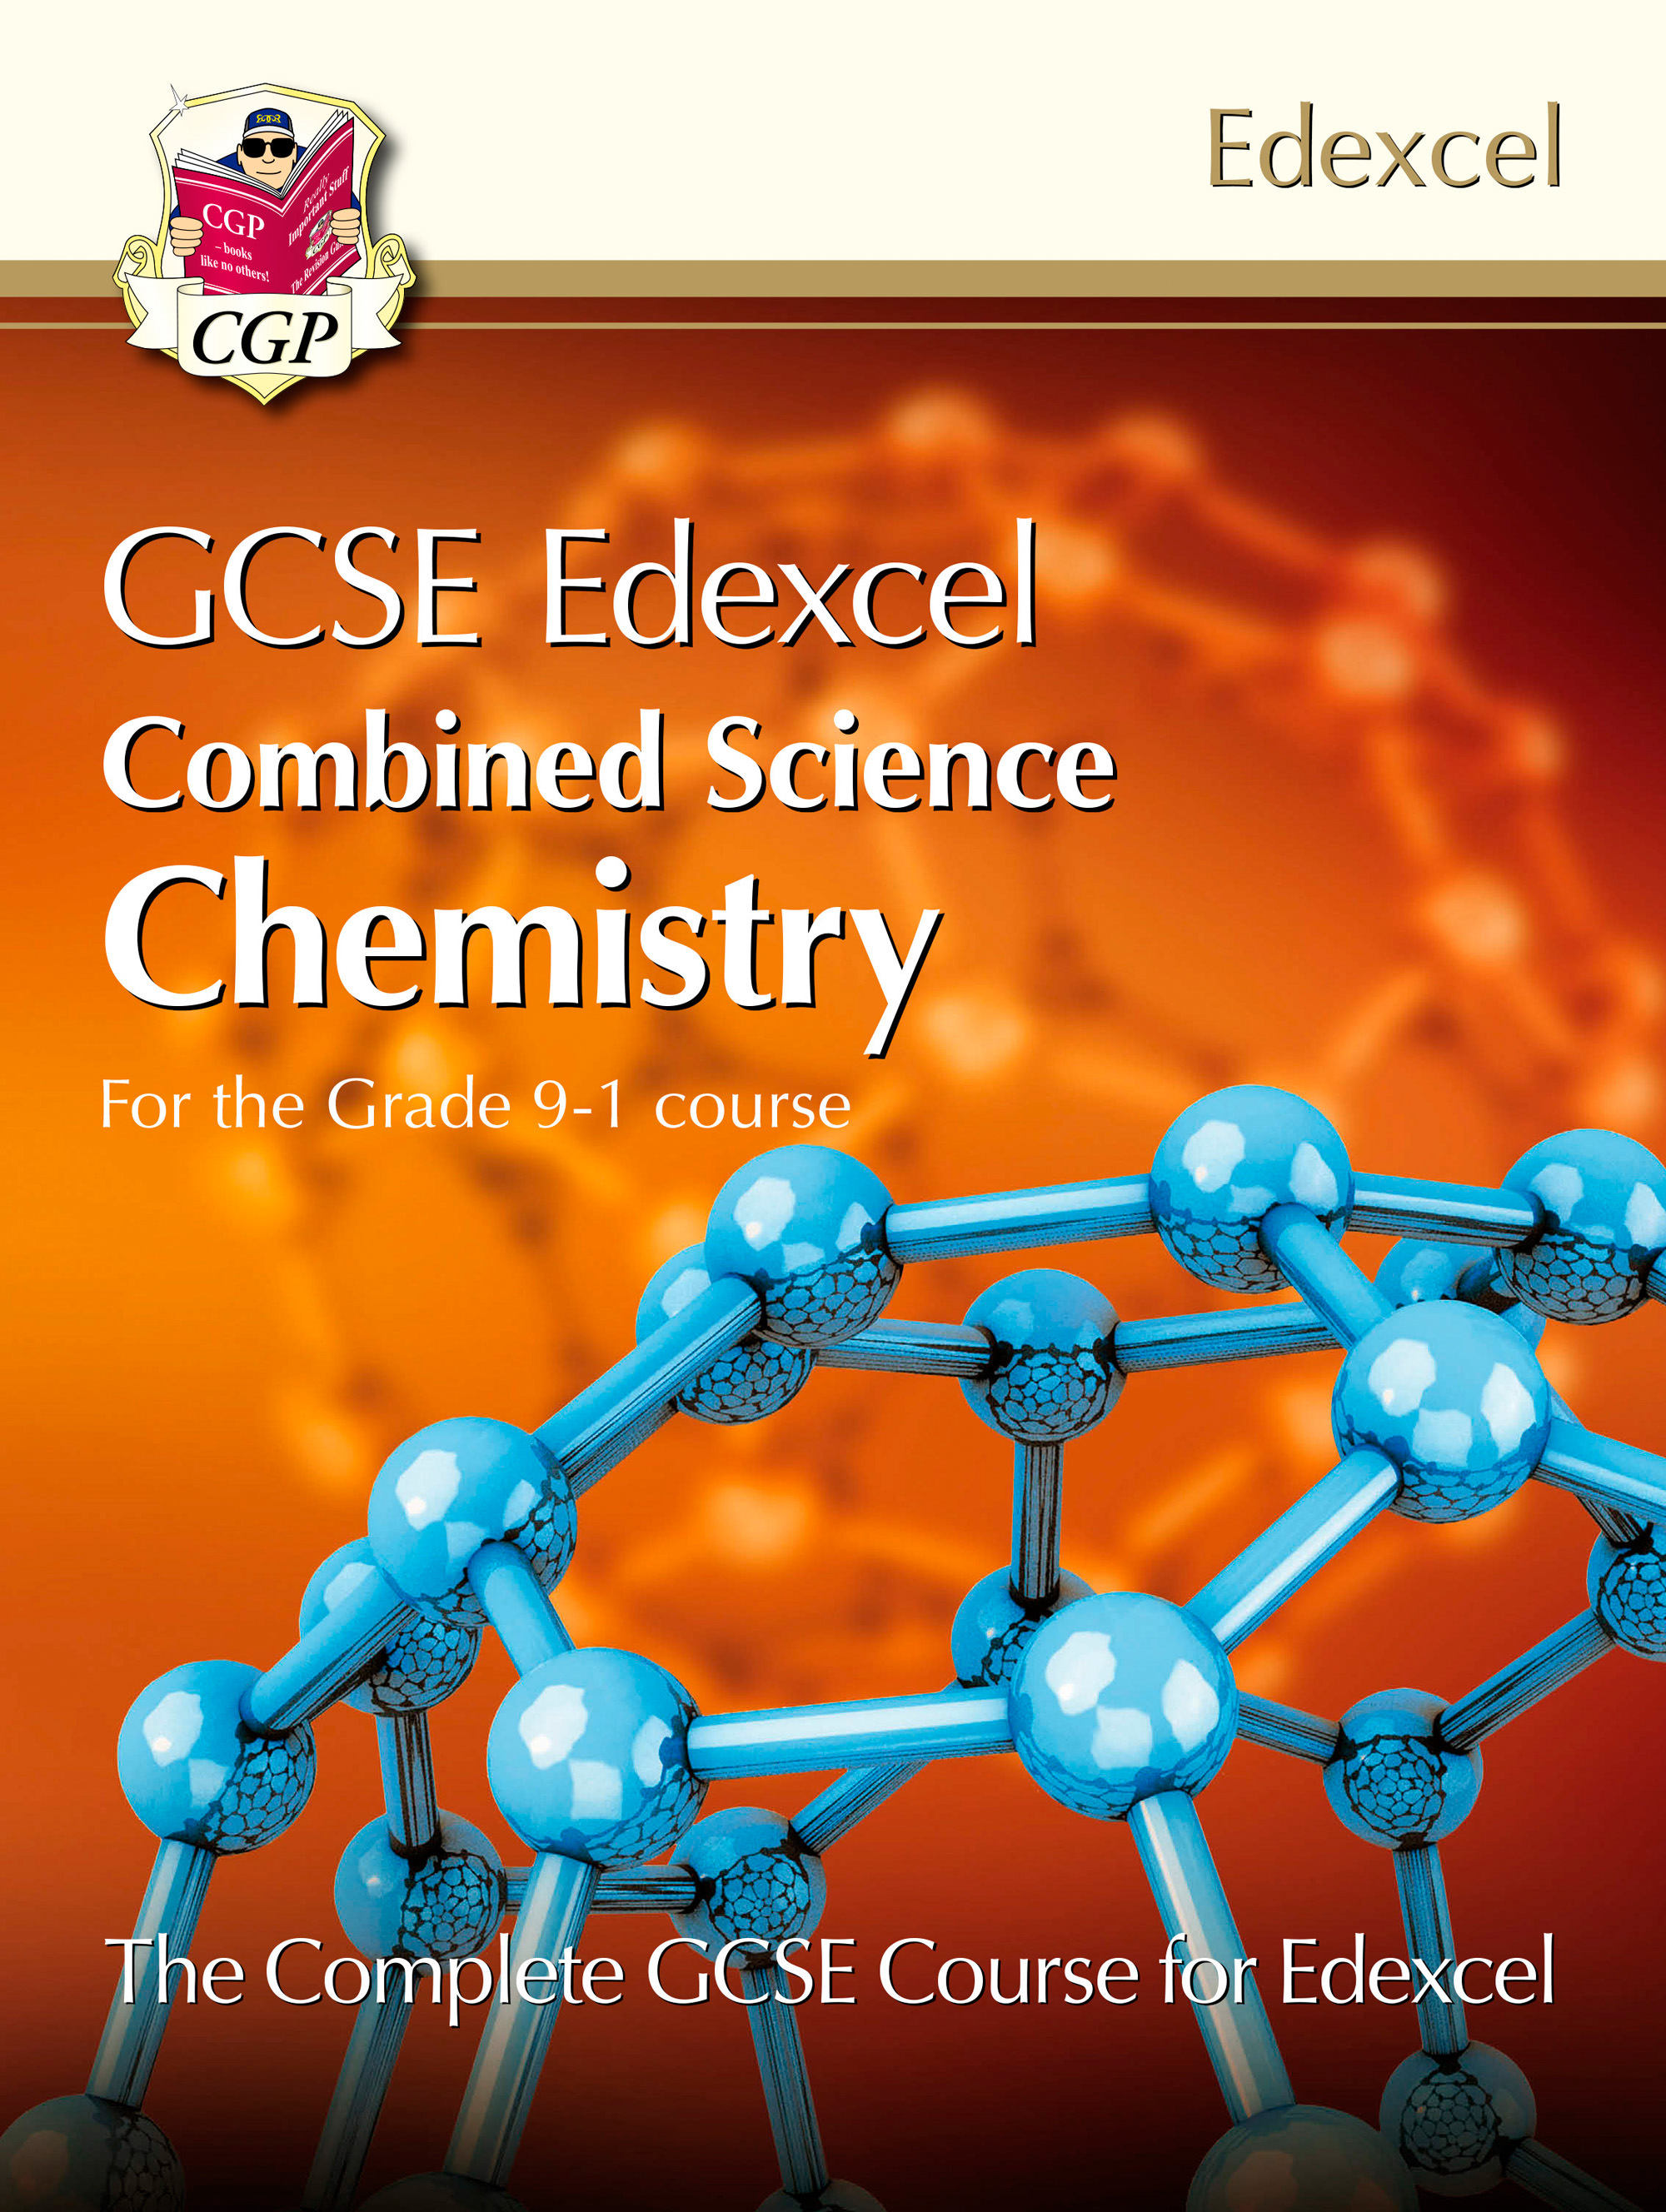 SCCET41DK - New Grade 9-1 GCSE Combined Science for Edexcel Chemistry Student Book